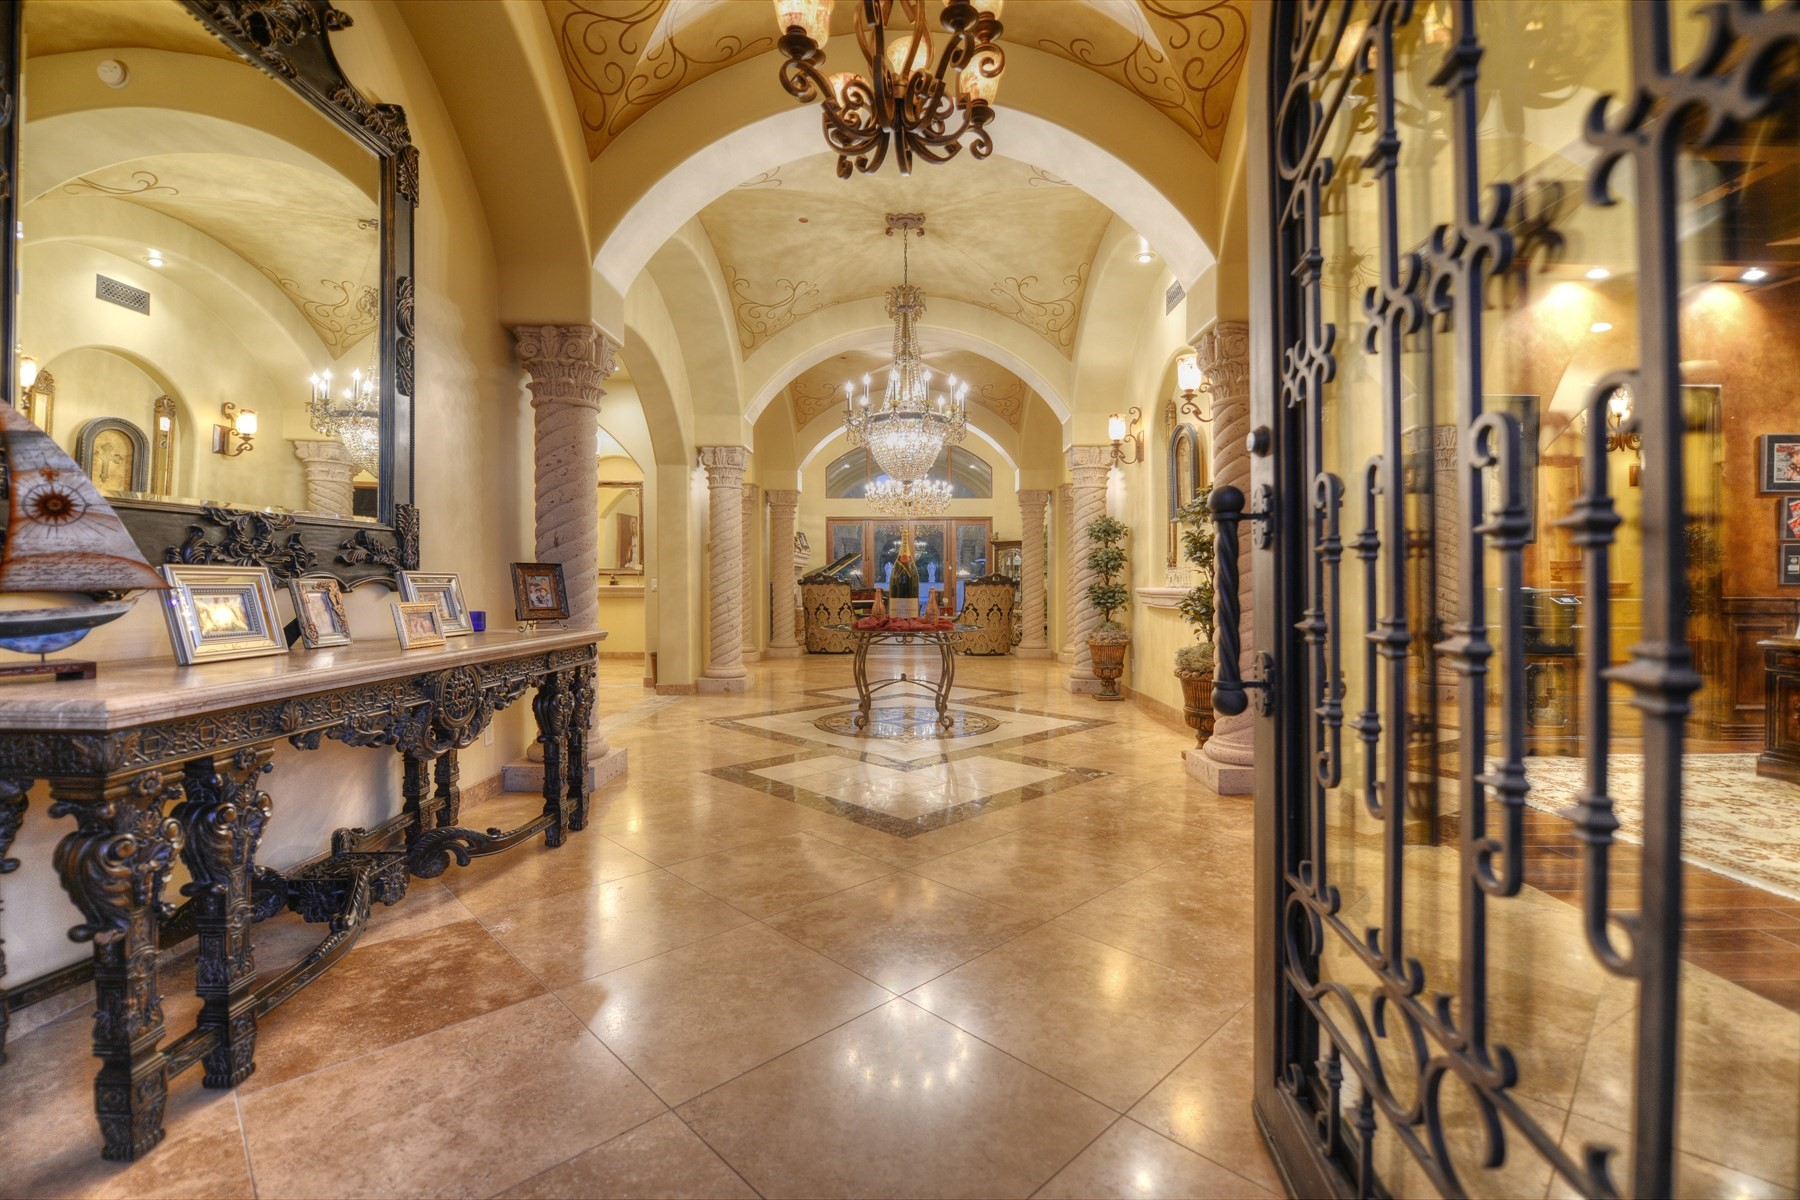 Single Family Home for Sale at A one of a kind custom built estate in Paradise Valley. 7115 E SUNNYVALE RD Paradise Valley, Arizona, 85253 United States